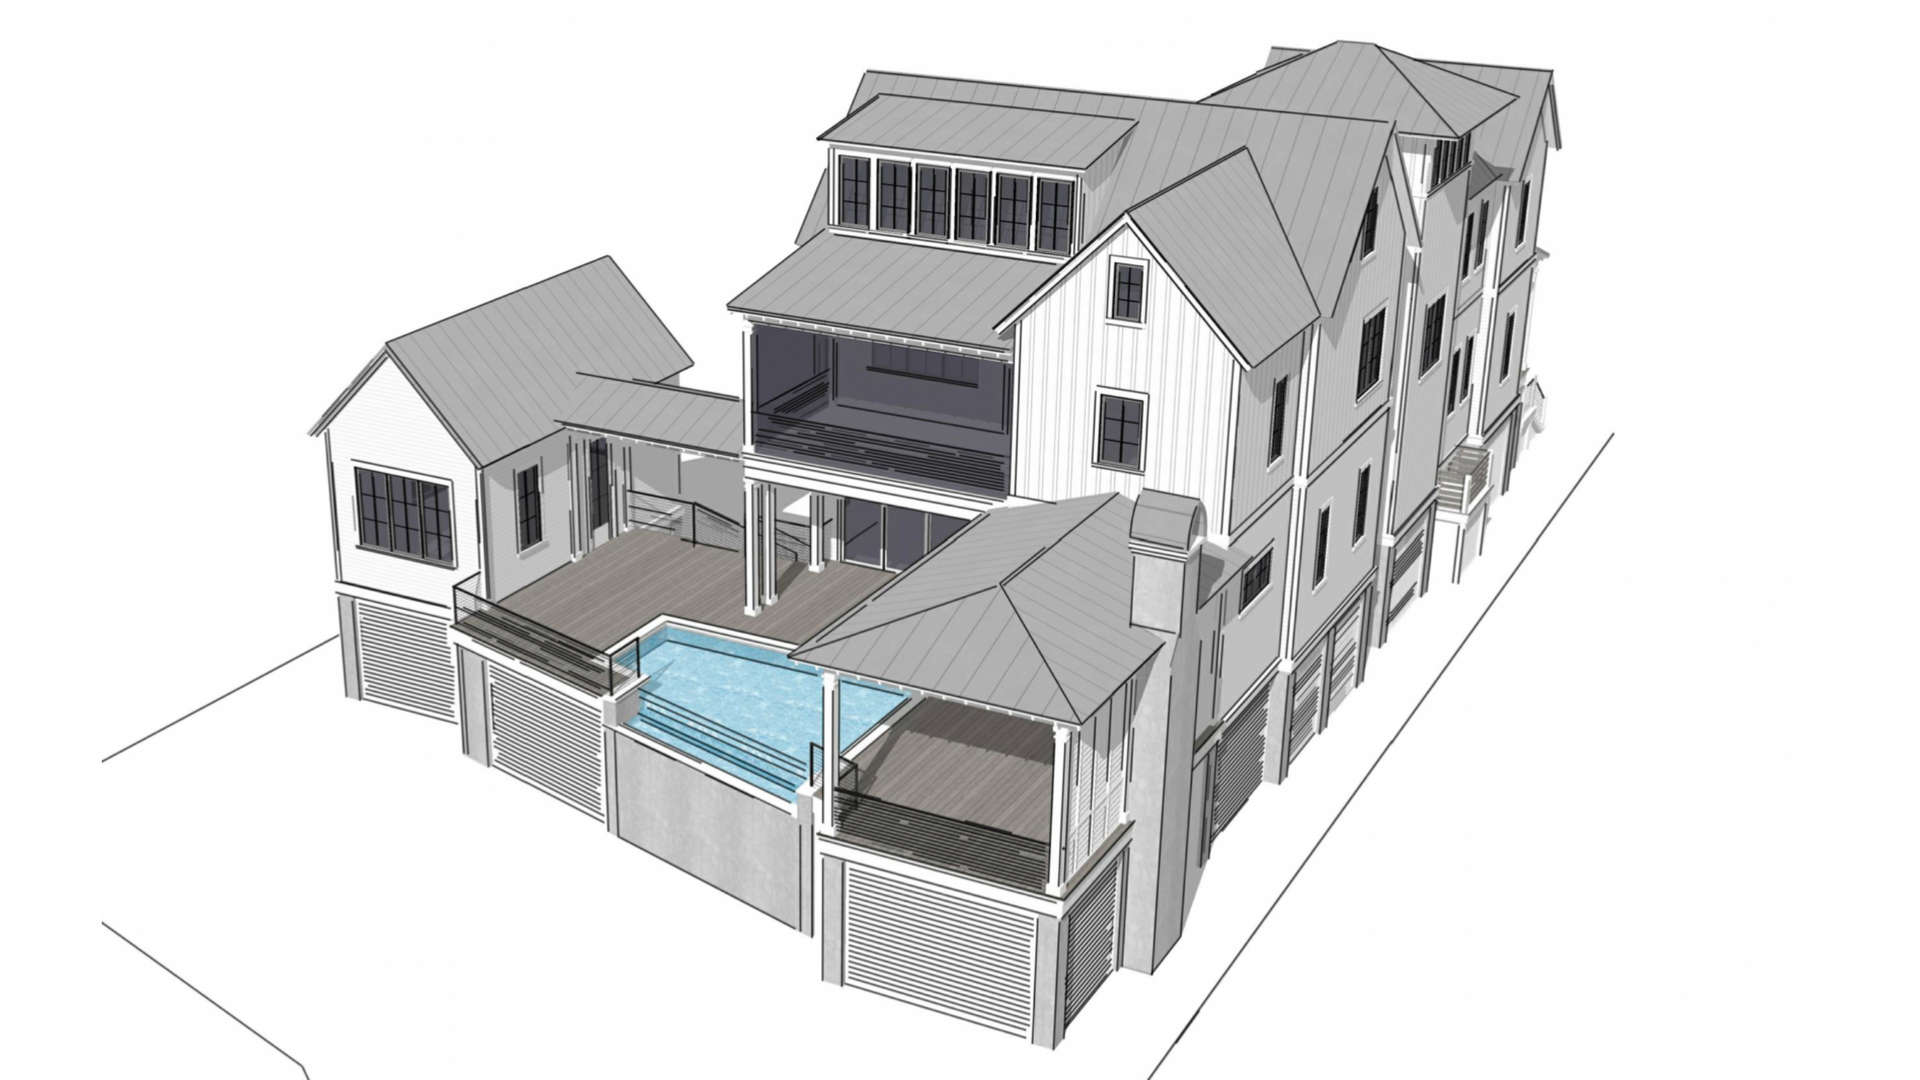 17 of 36. Home renderings are to act as aid in lot visualization. Only lot for sale.